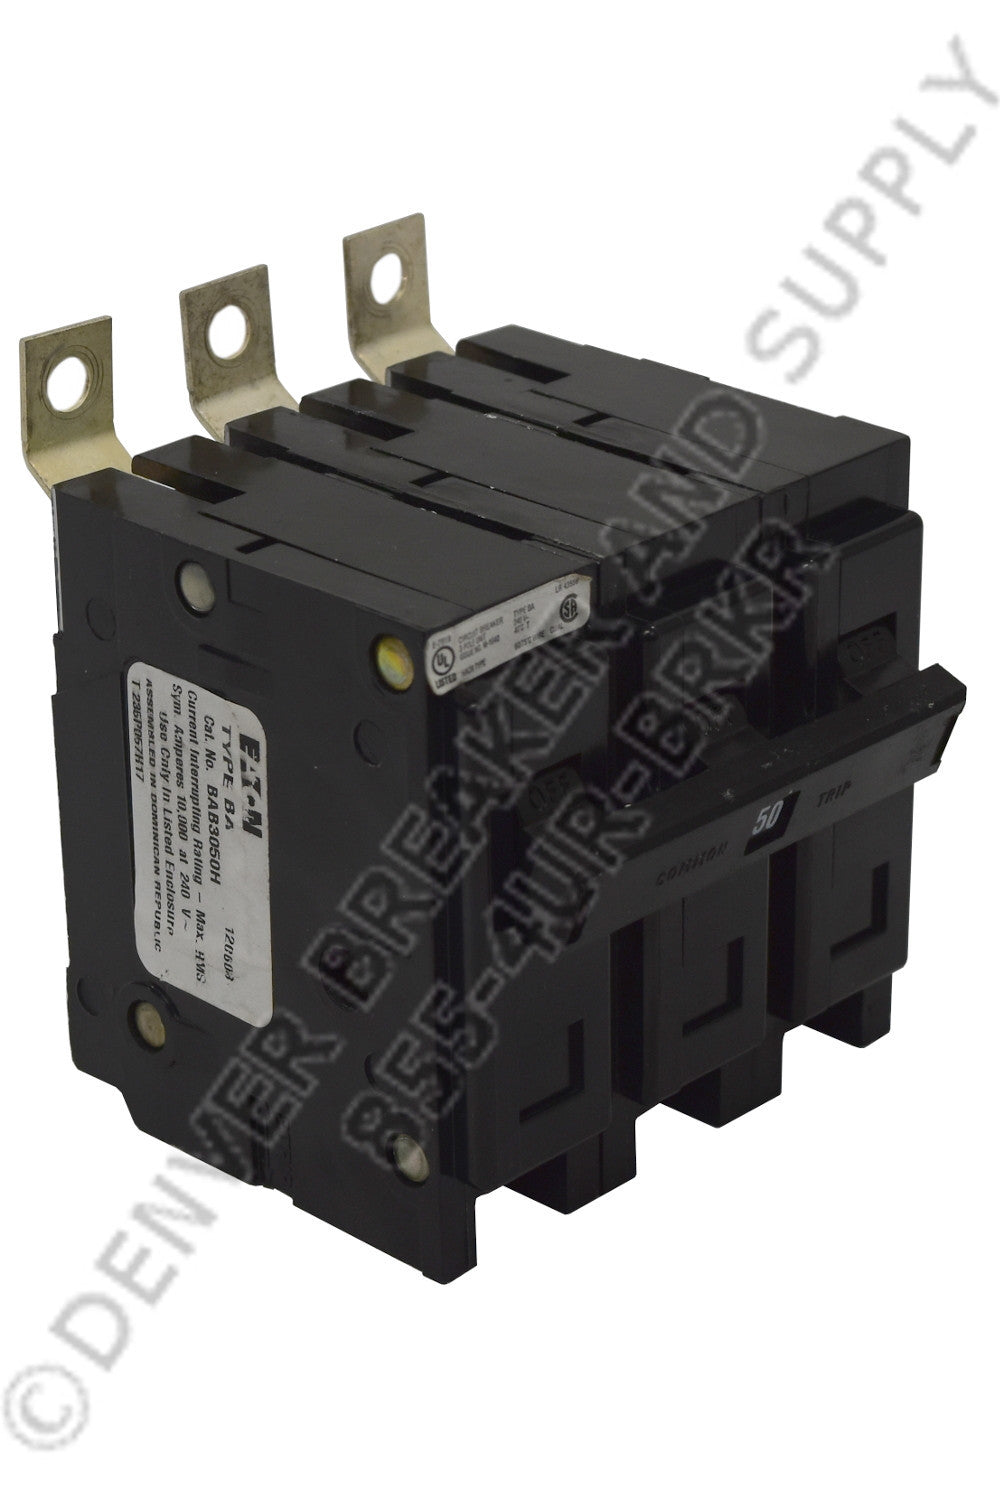 Cutler Hammer BAB3100H Circuit Breakers